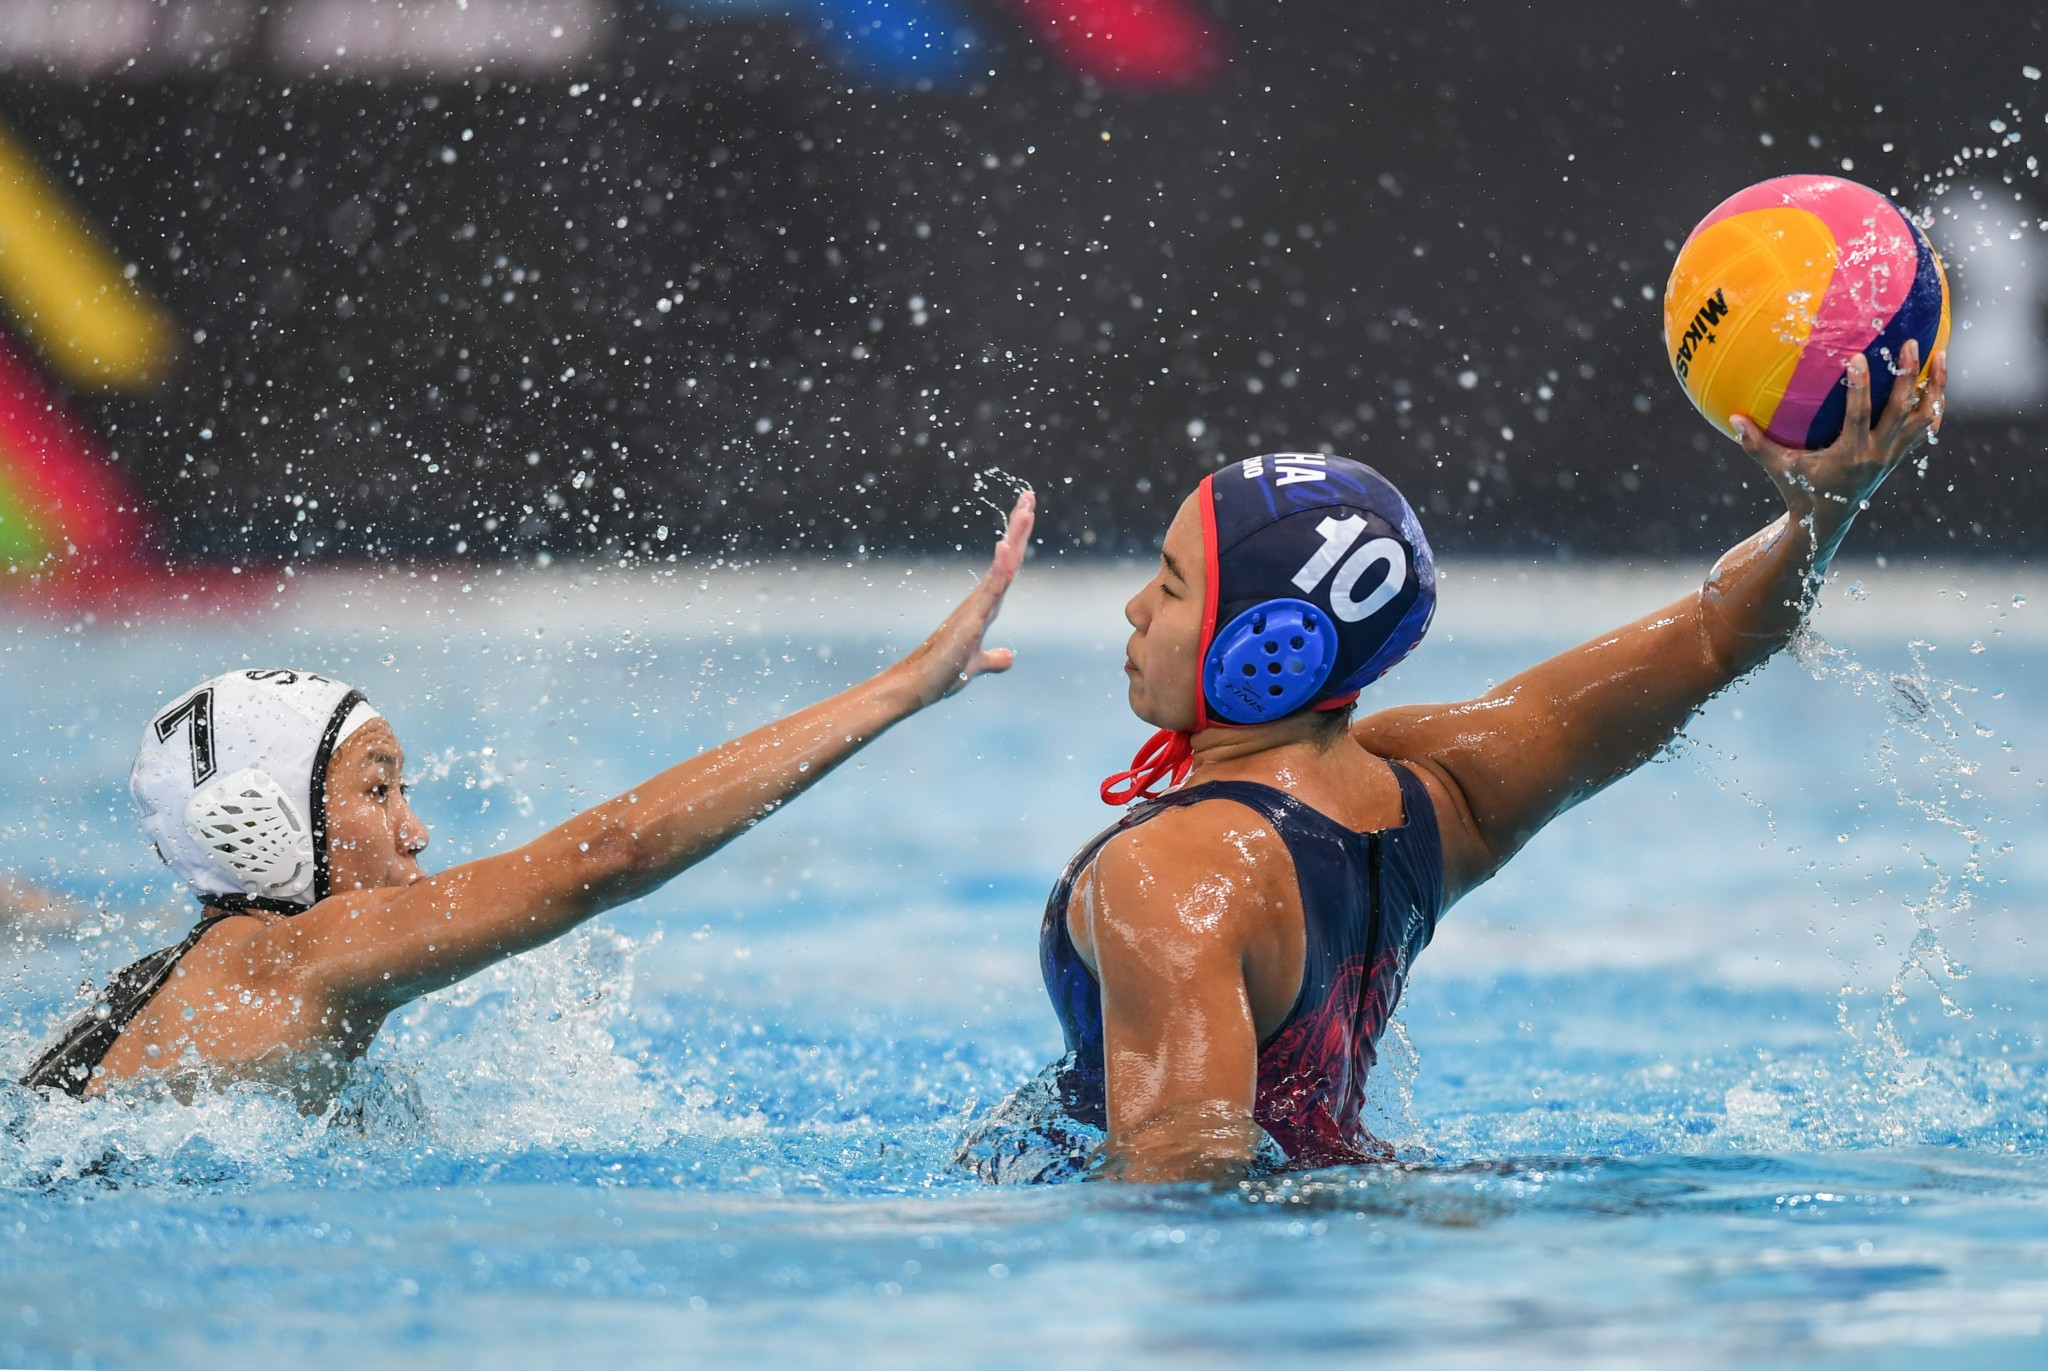 Thailand clinched the gold medal in the women's water polo tournament ©Getty Images